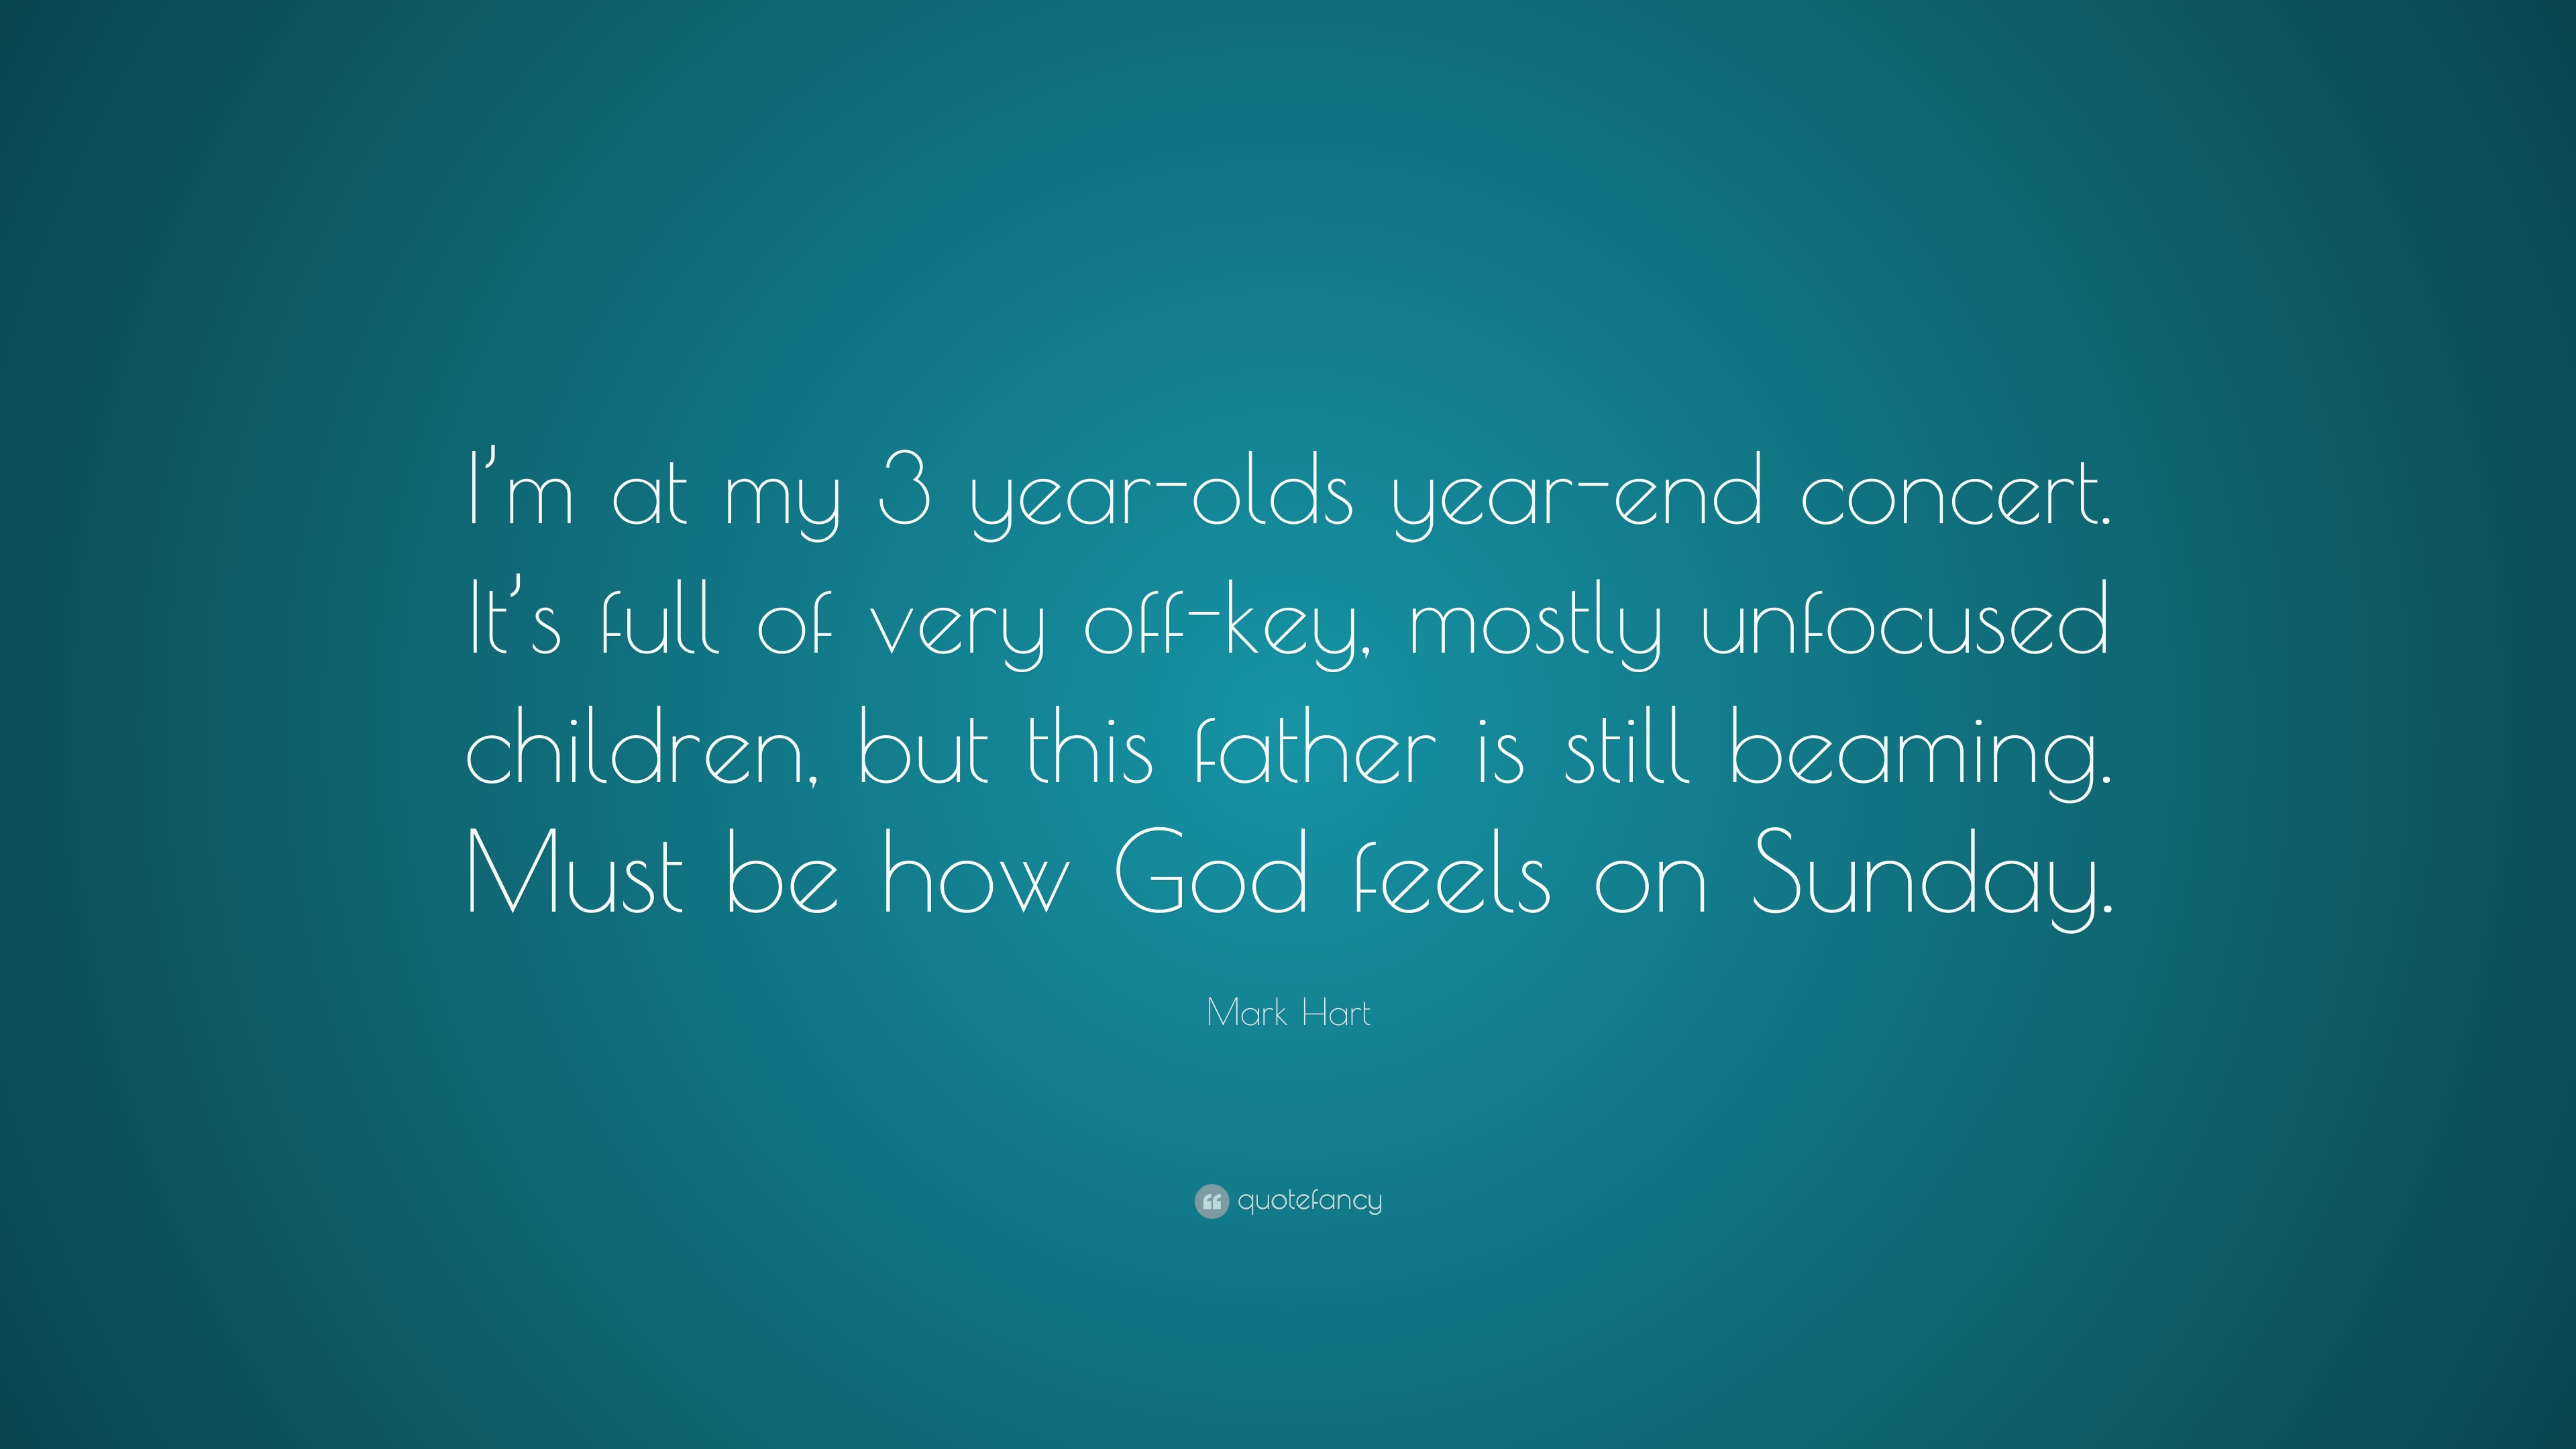 Mark hart quote im at my 3 year olds year